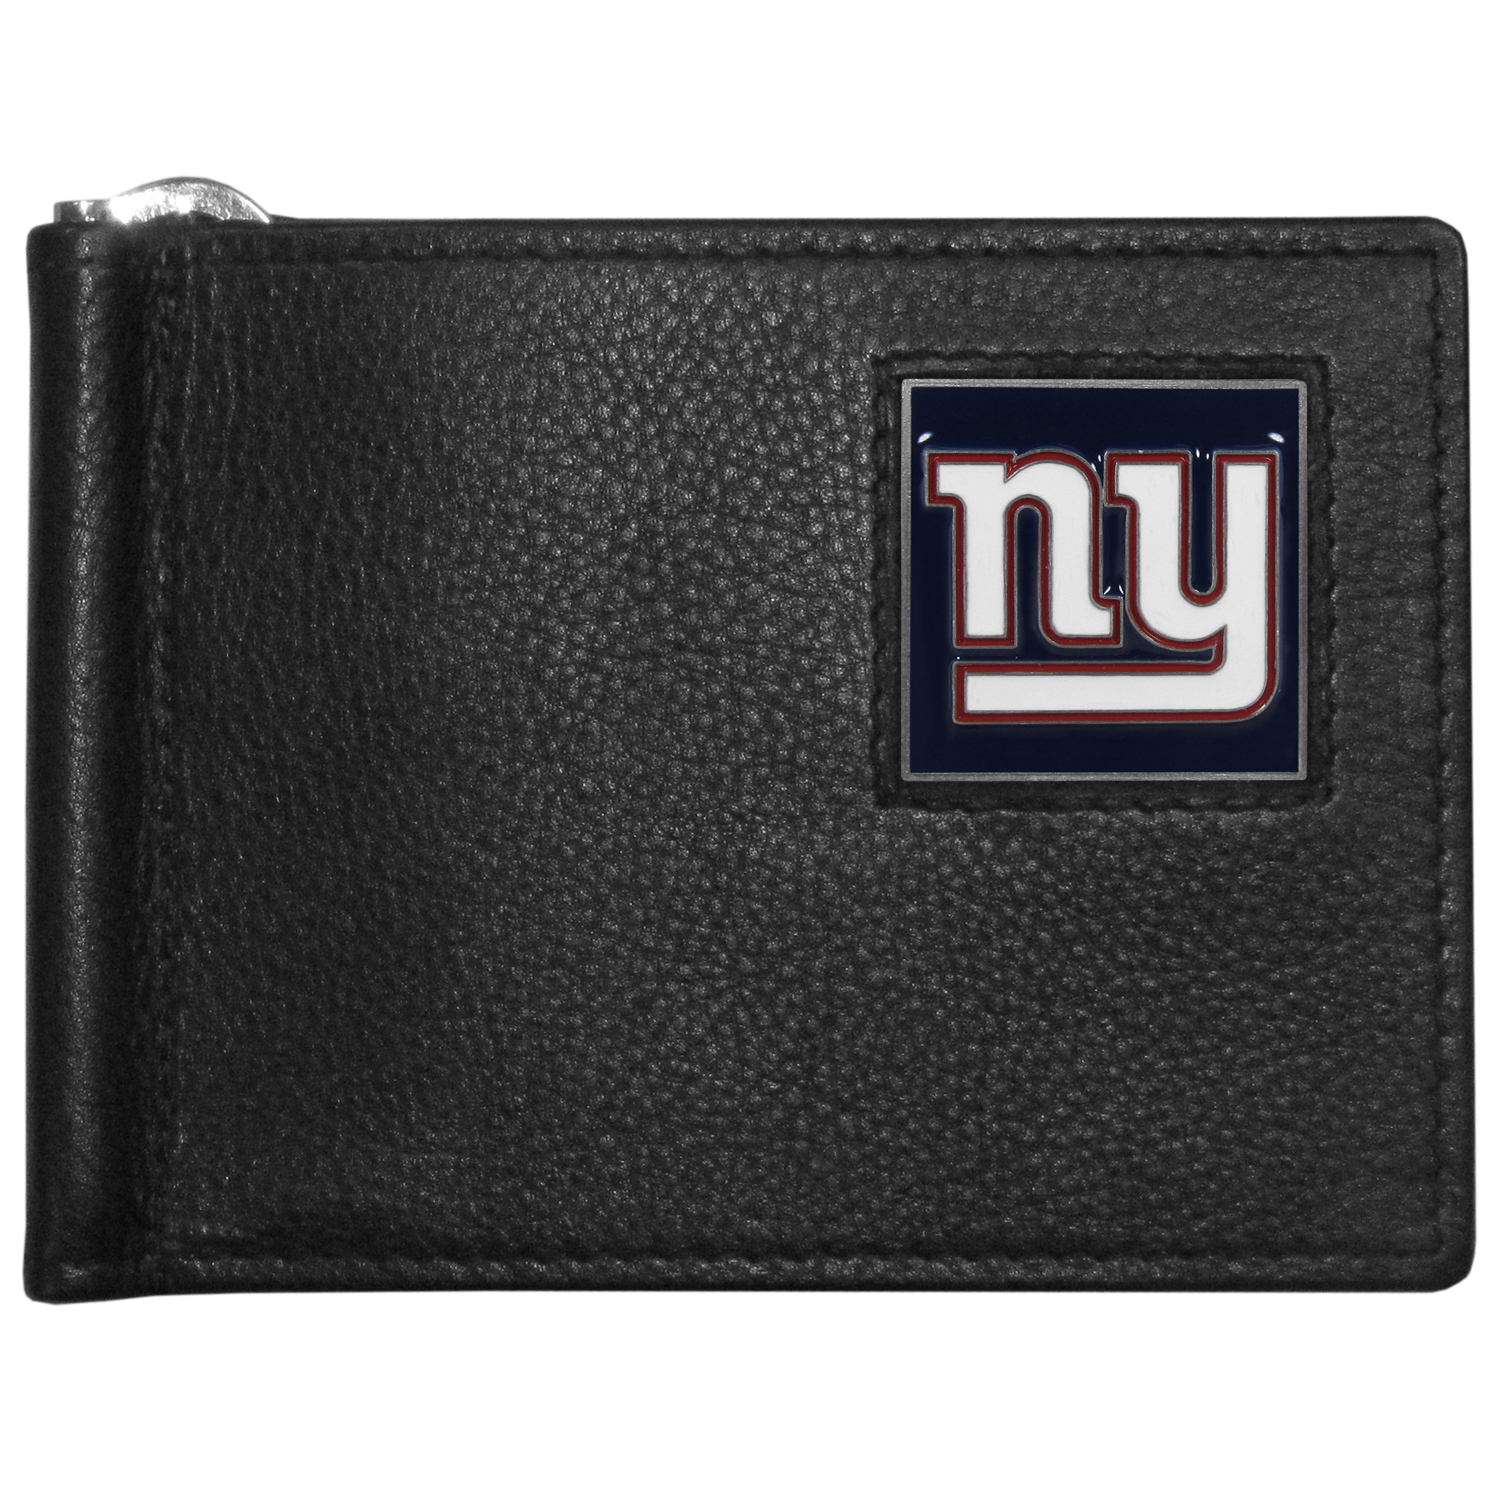 New York Giants Leather Bill Clip Wallet - This cool new style wallet features an inner, metal bill clip that lips up for easy access. The super slim wallet holds tons of stuff with ample pockets, credit card slots & windowed ID slot.  The wallet is made of genuine fine grain leather and it finished with a metal New York Giants emblem. The wallet is shipped in gift box packaging.